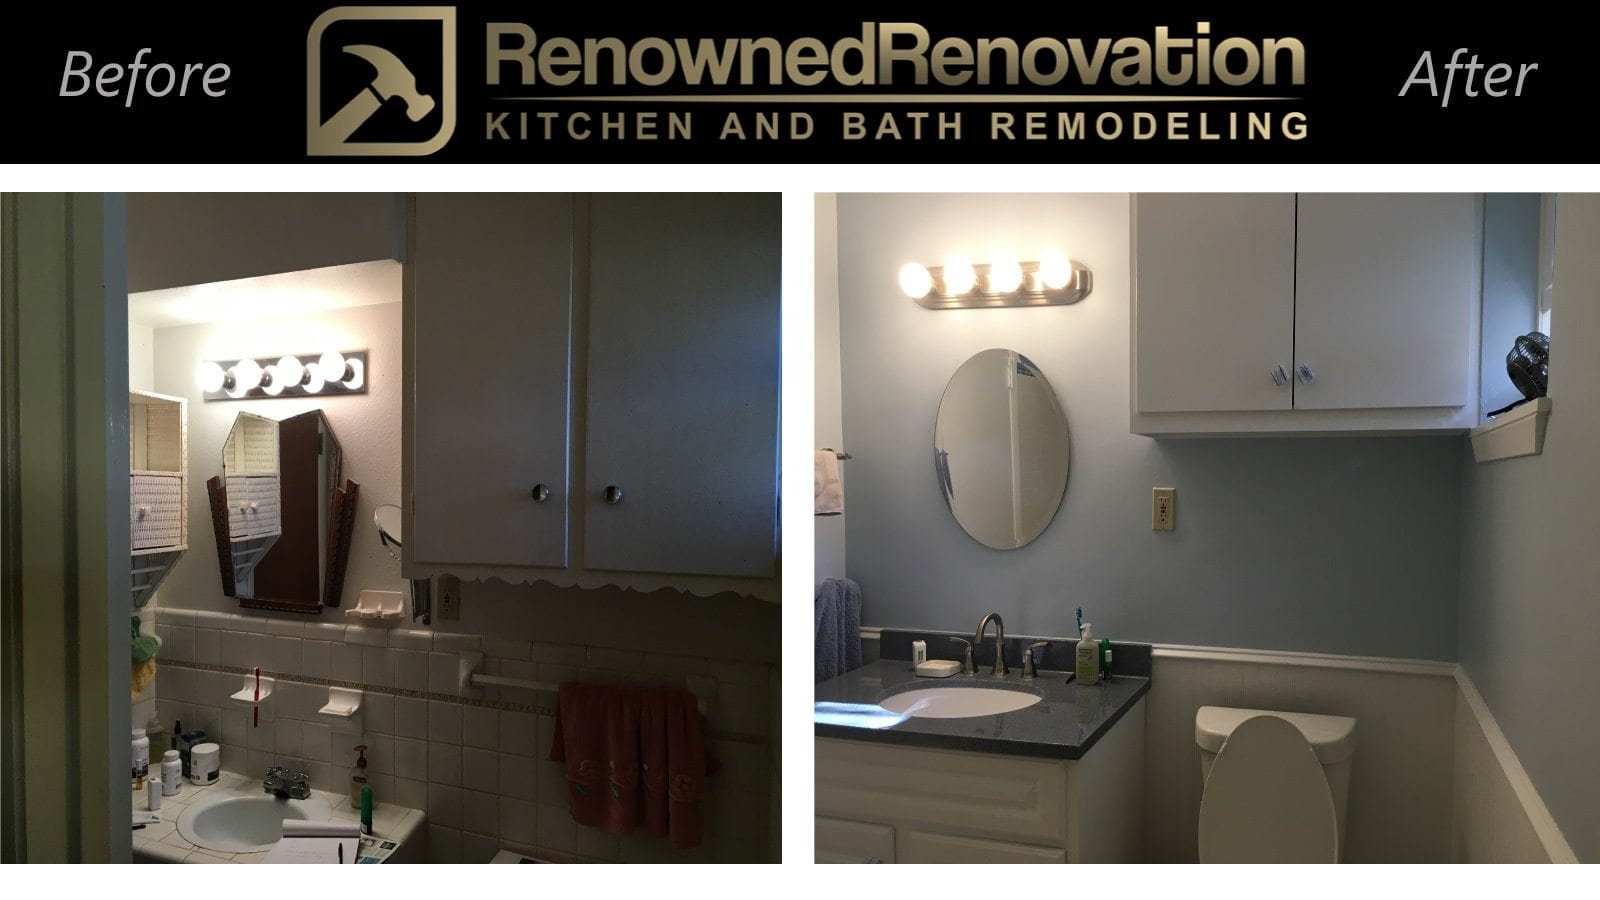 remodeling blog archives - page 2 of 4 - renowned renovation